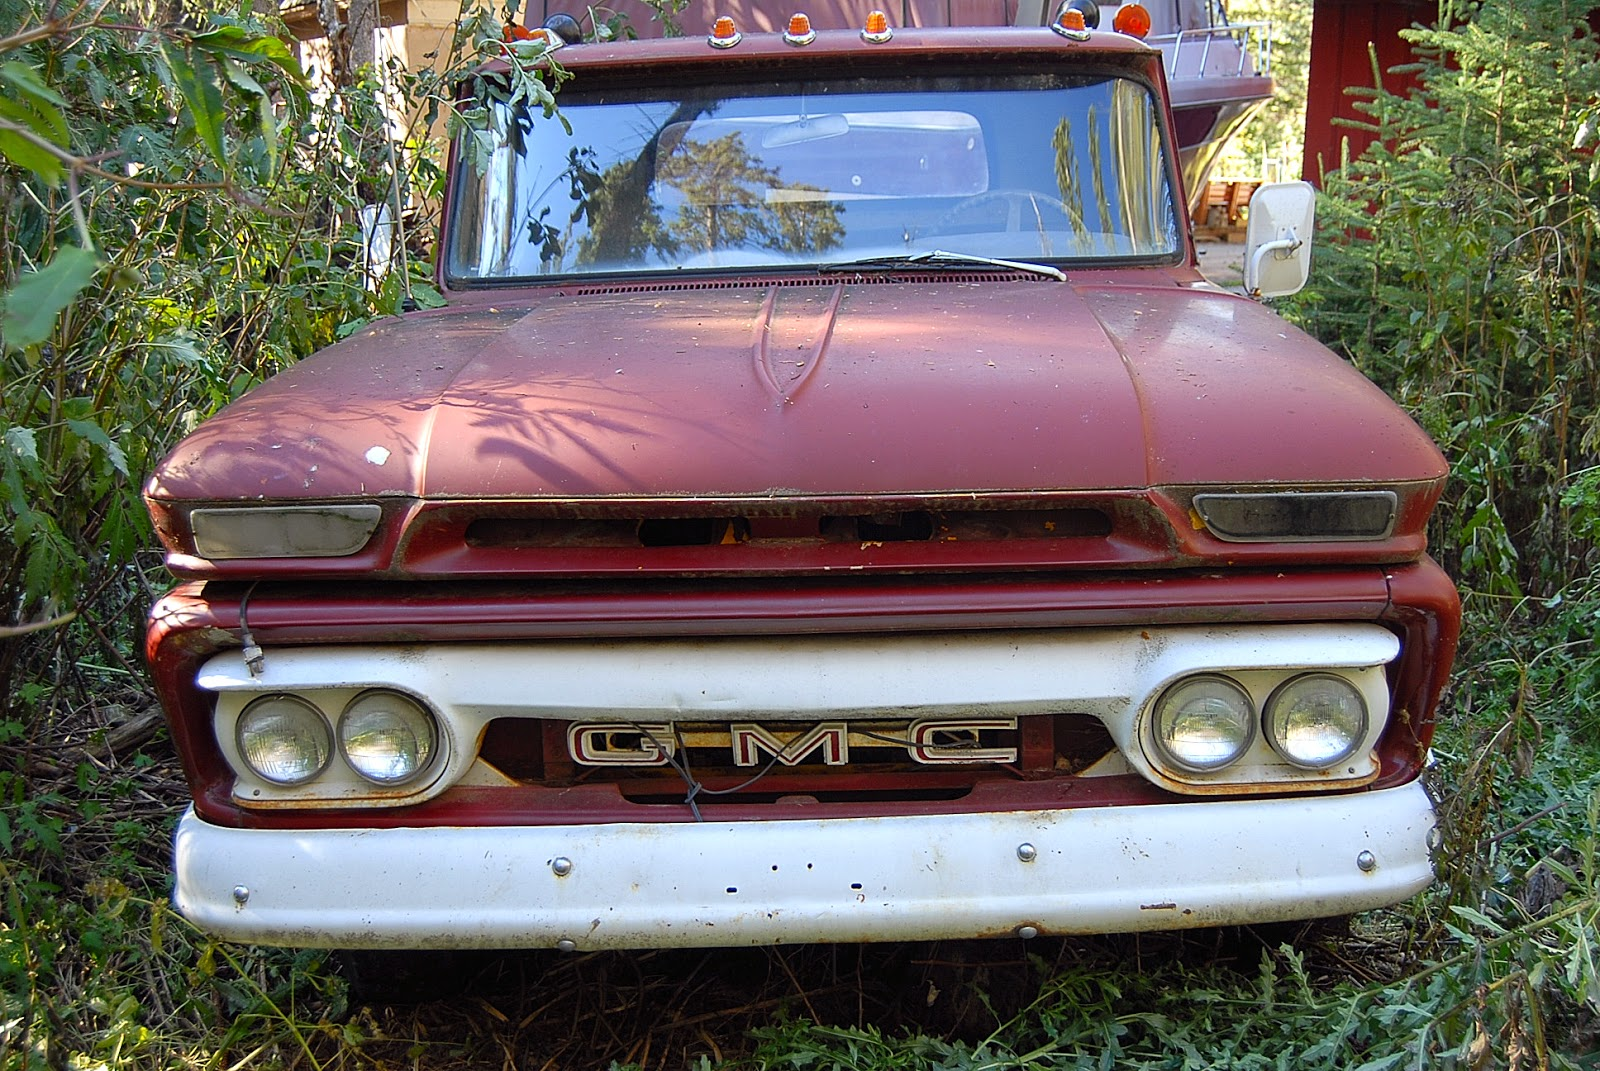 Autoliterate 1966 Gmc 910 Banff Chevy C10 Trucks For Sale Impressive Hunk Of Truck Is It Havent Asked Ae Theres Another These In Red Deer Alberta Asking 450 Thats Canadian Eh